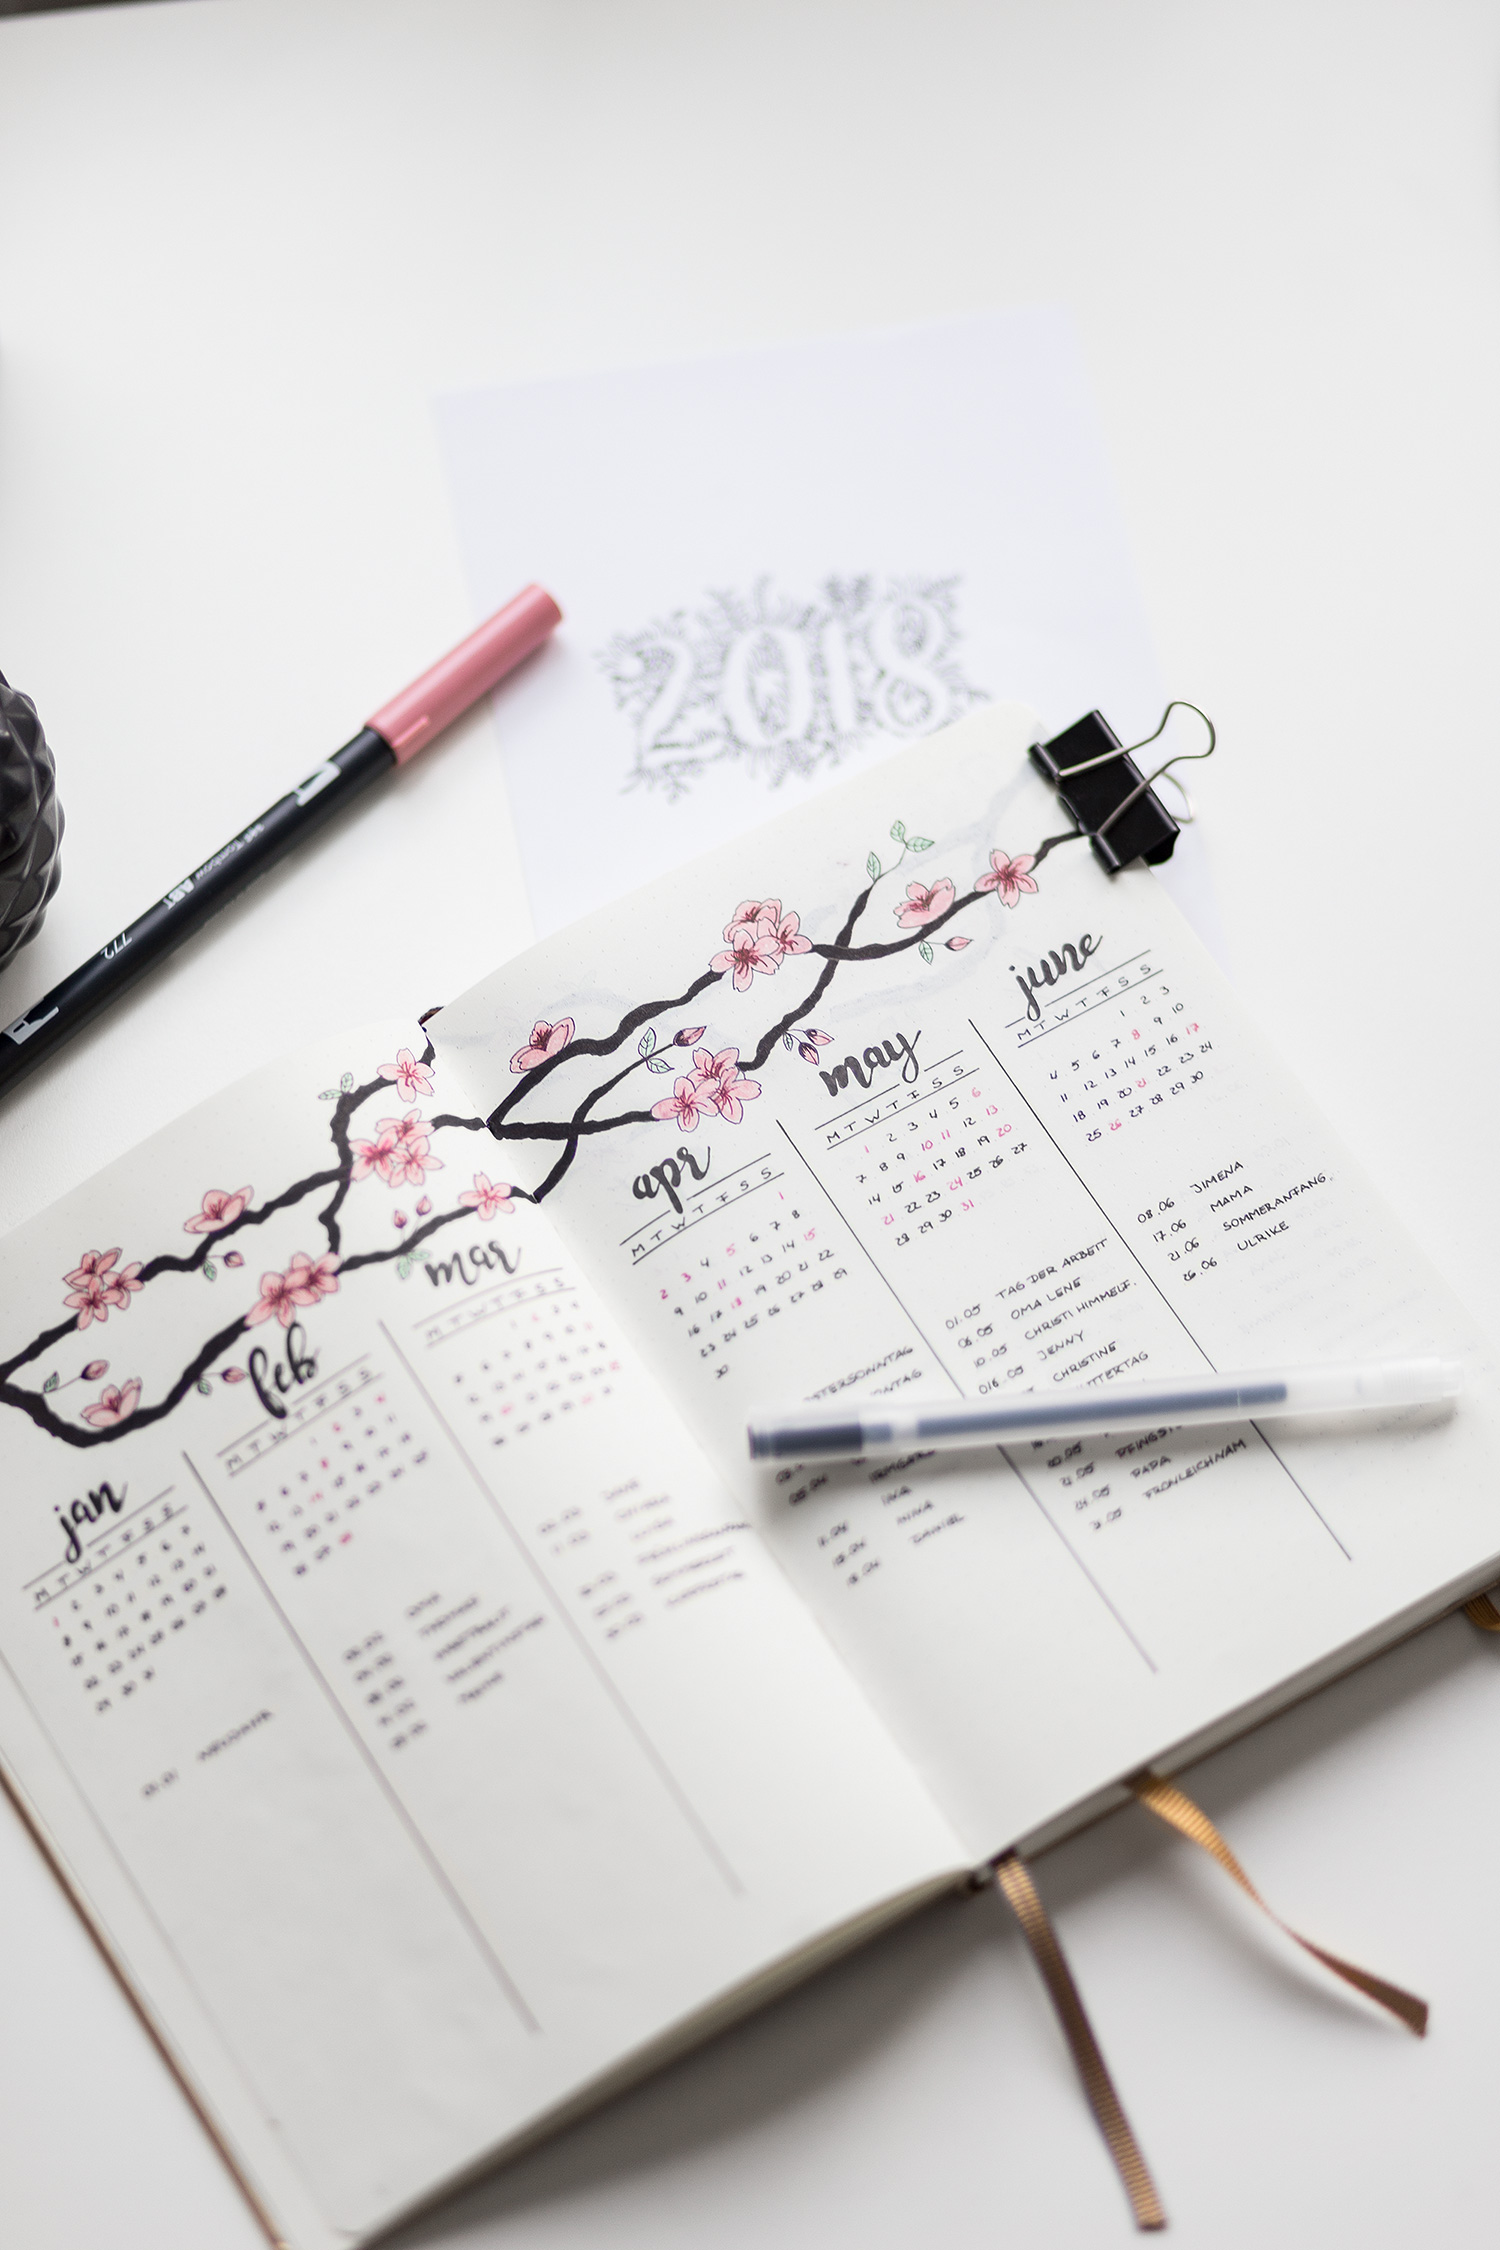 Januar Favoriten 2018, Monatsrückblick, Bullet Journal, bezauberndenana.de